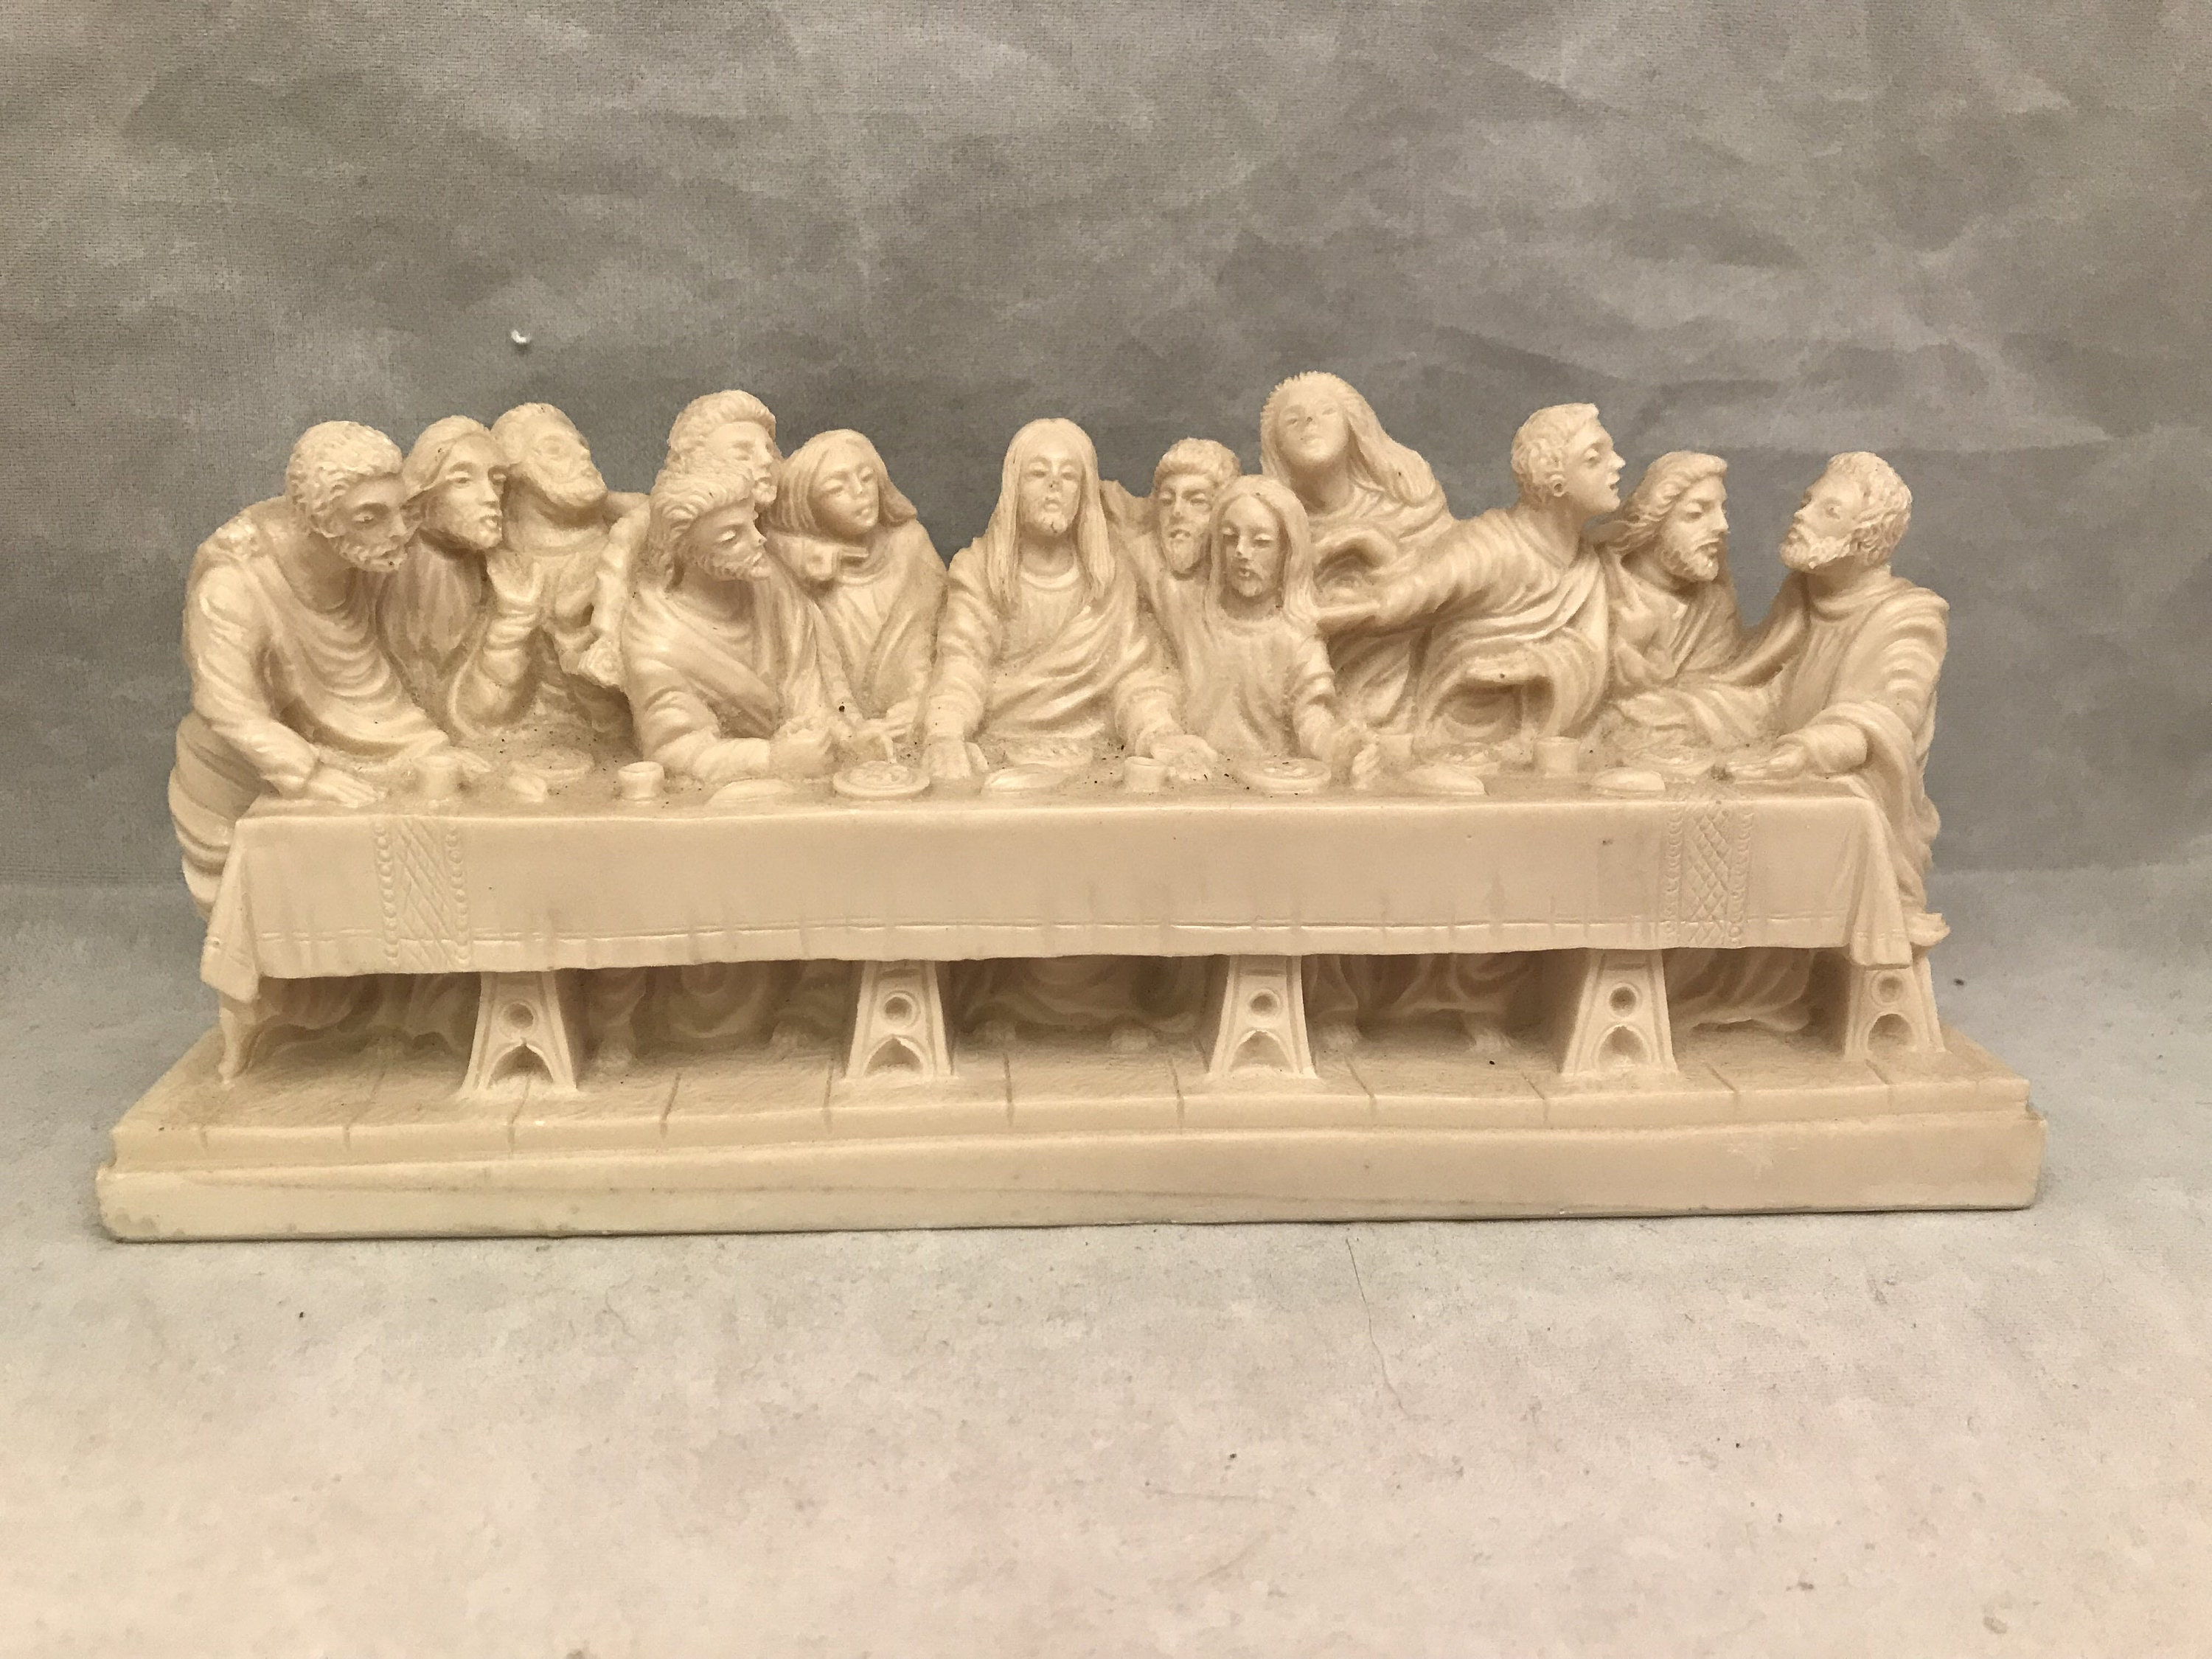 A Giannetti Last Supper Carving / Statue Resin Vintage | Etsy